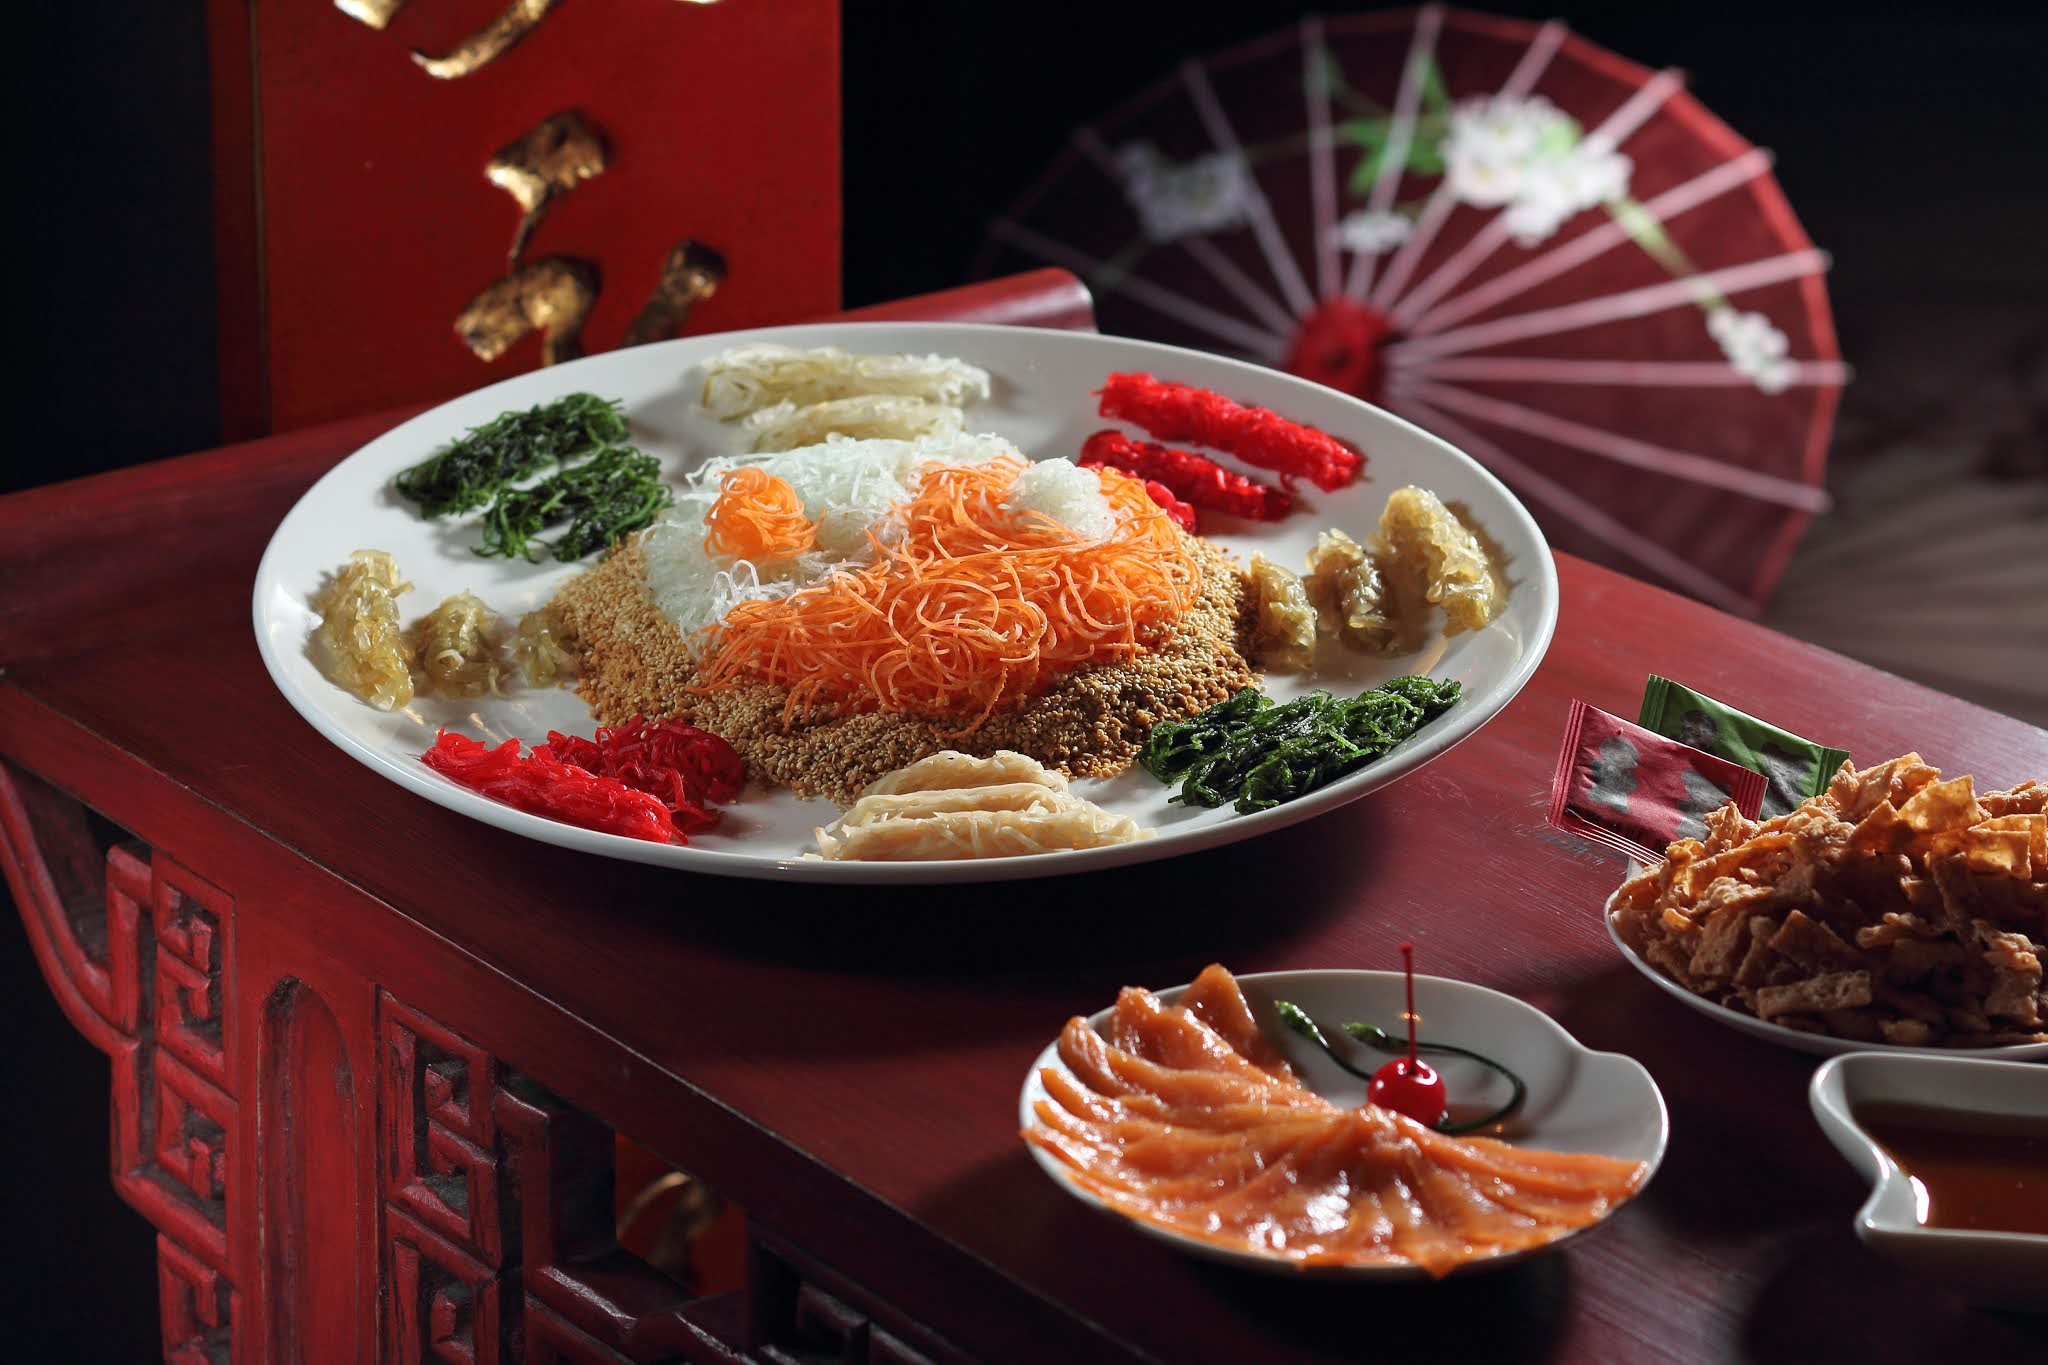 Celebrate Lunar New Year with loved ones over an auspicious feast at Double Tree by Hilton Johor Bahru